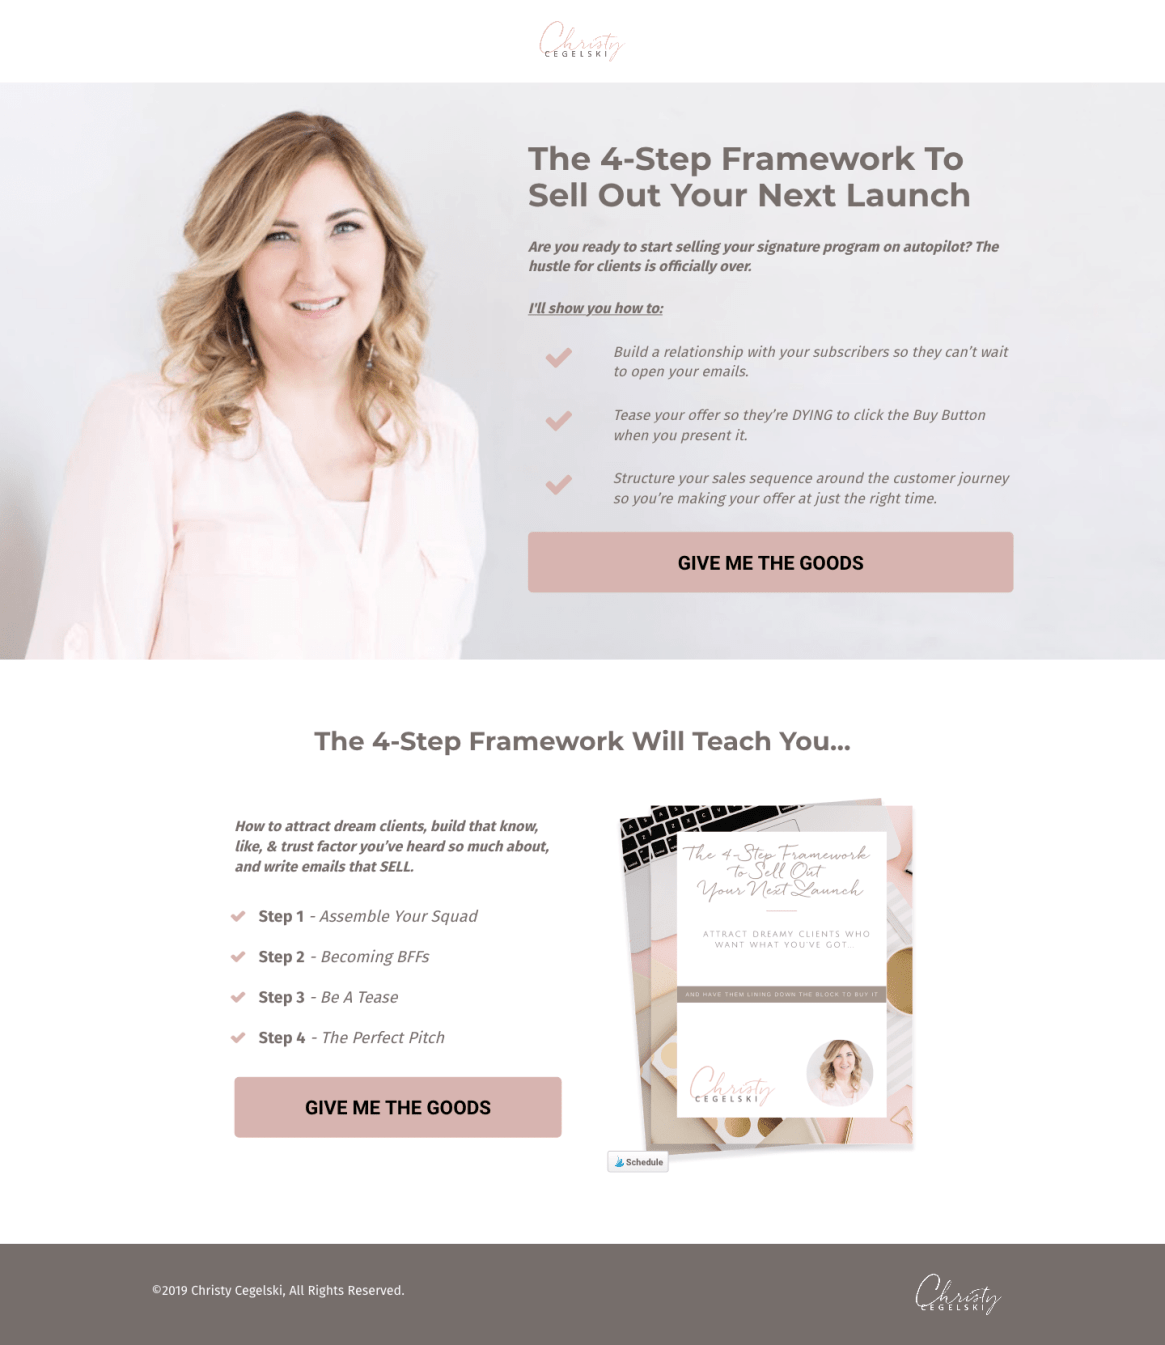 FireShot Capture 019 - The 4-Step Framework To Sell Out Your Next Launch - christycegelski.lpages.co